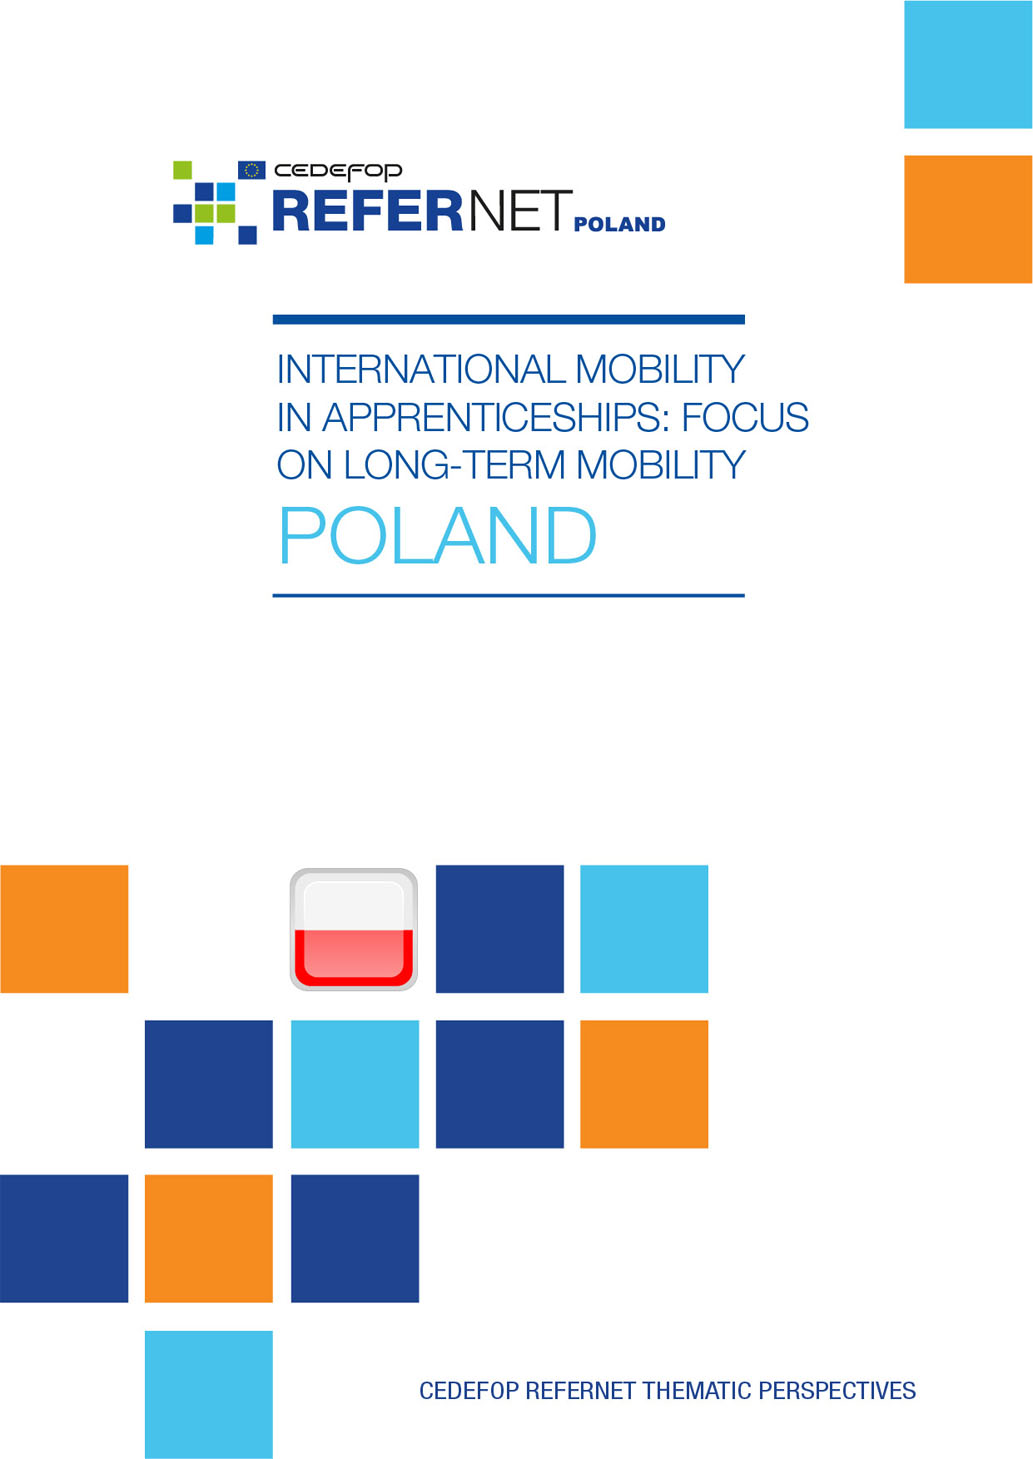 International mobility in apprenticeships: focus on long-term mobility: Poland